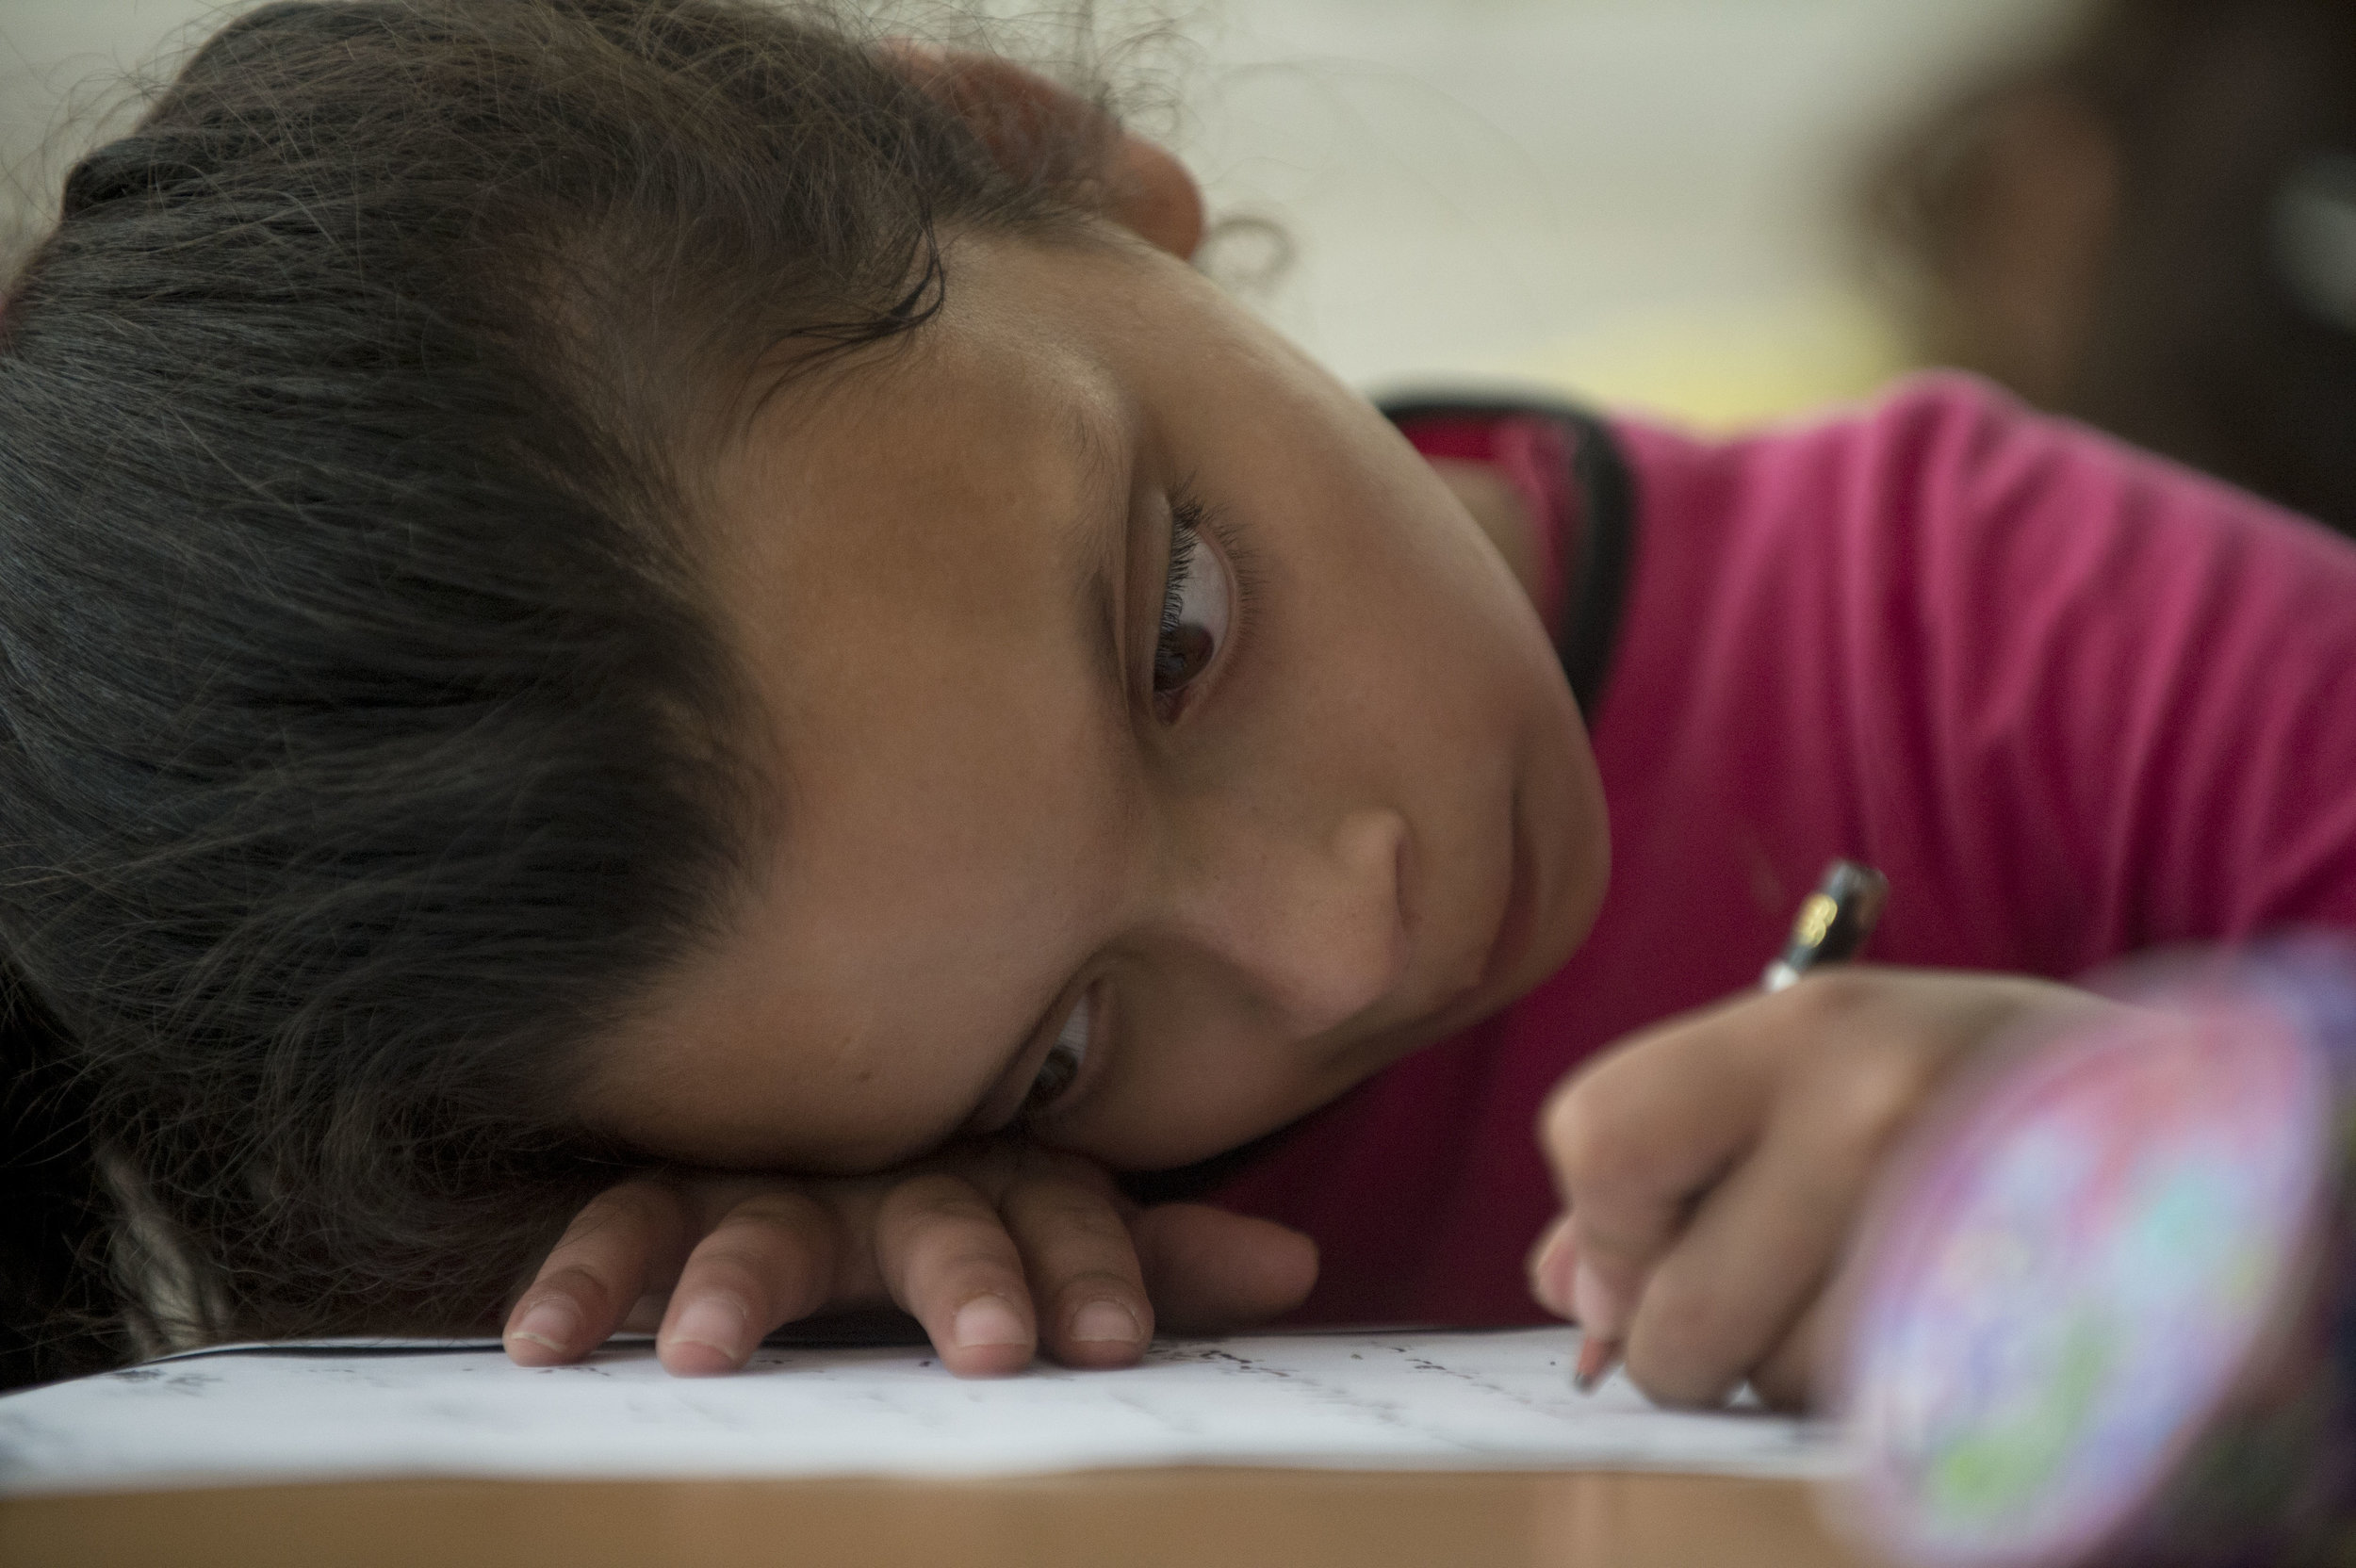 Ten-year-old Hala Kakaour concentrates on her exam work during classes at the Peace Center for the Blind in East Jerusalem. Hala still has partial vision however it is very limited like many of the other students at the school. In order to read and write Hala and others use bold pencils and must get extremely close to their work.